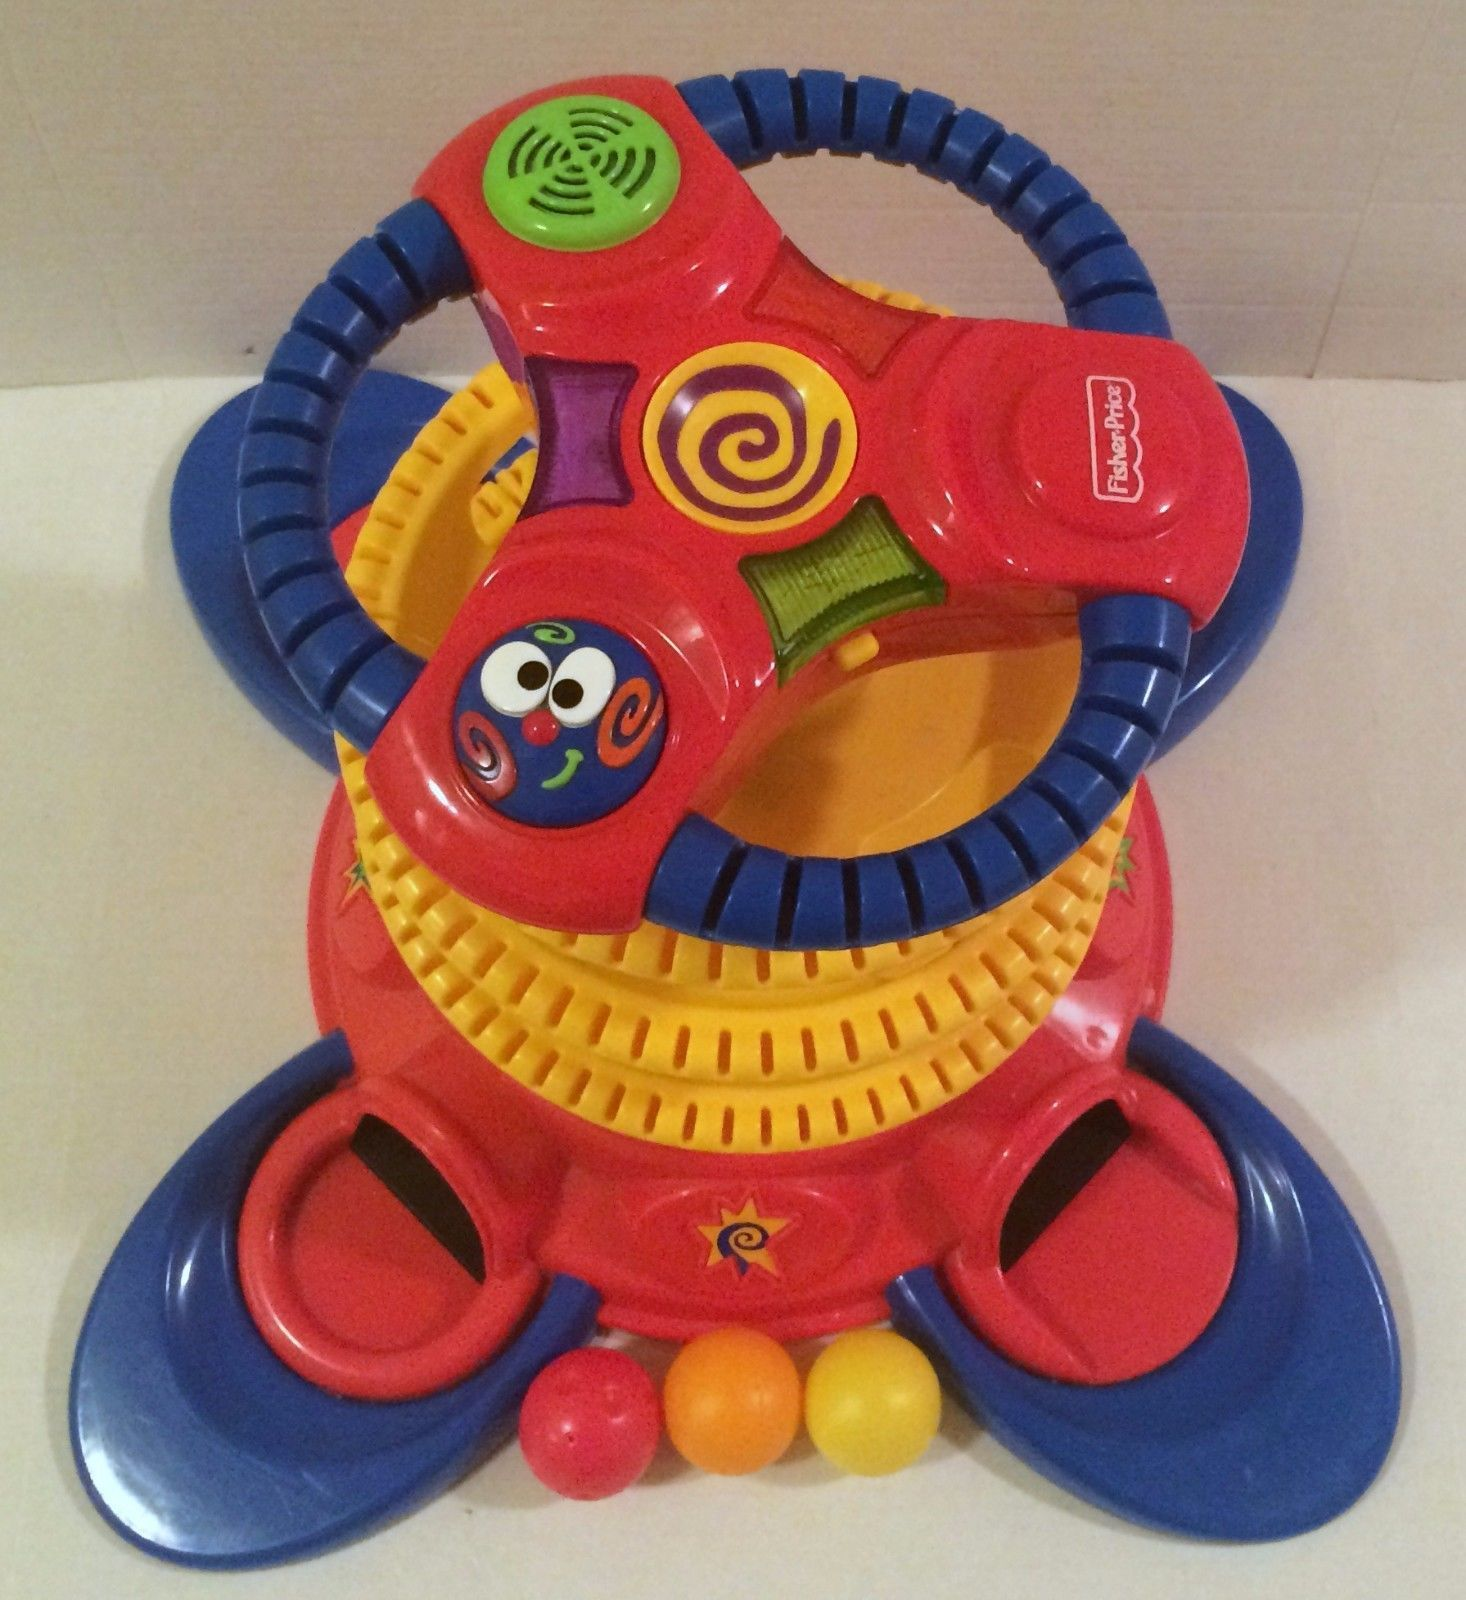 Fisher Price Baby Playzone Pull Up Ball and similar items